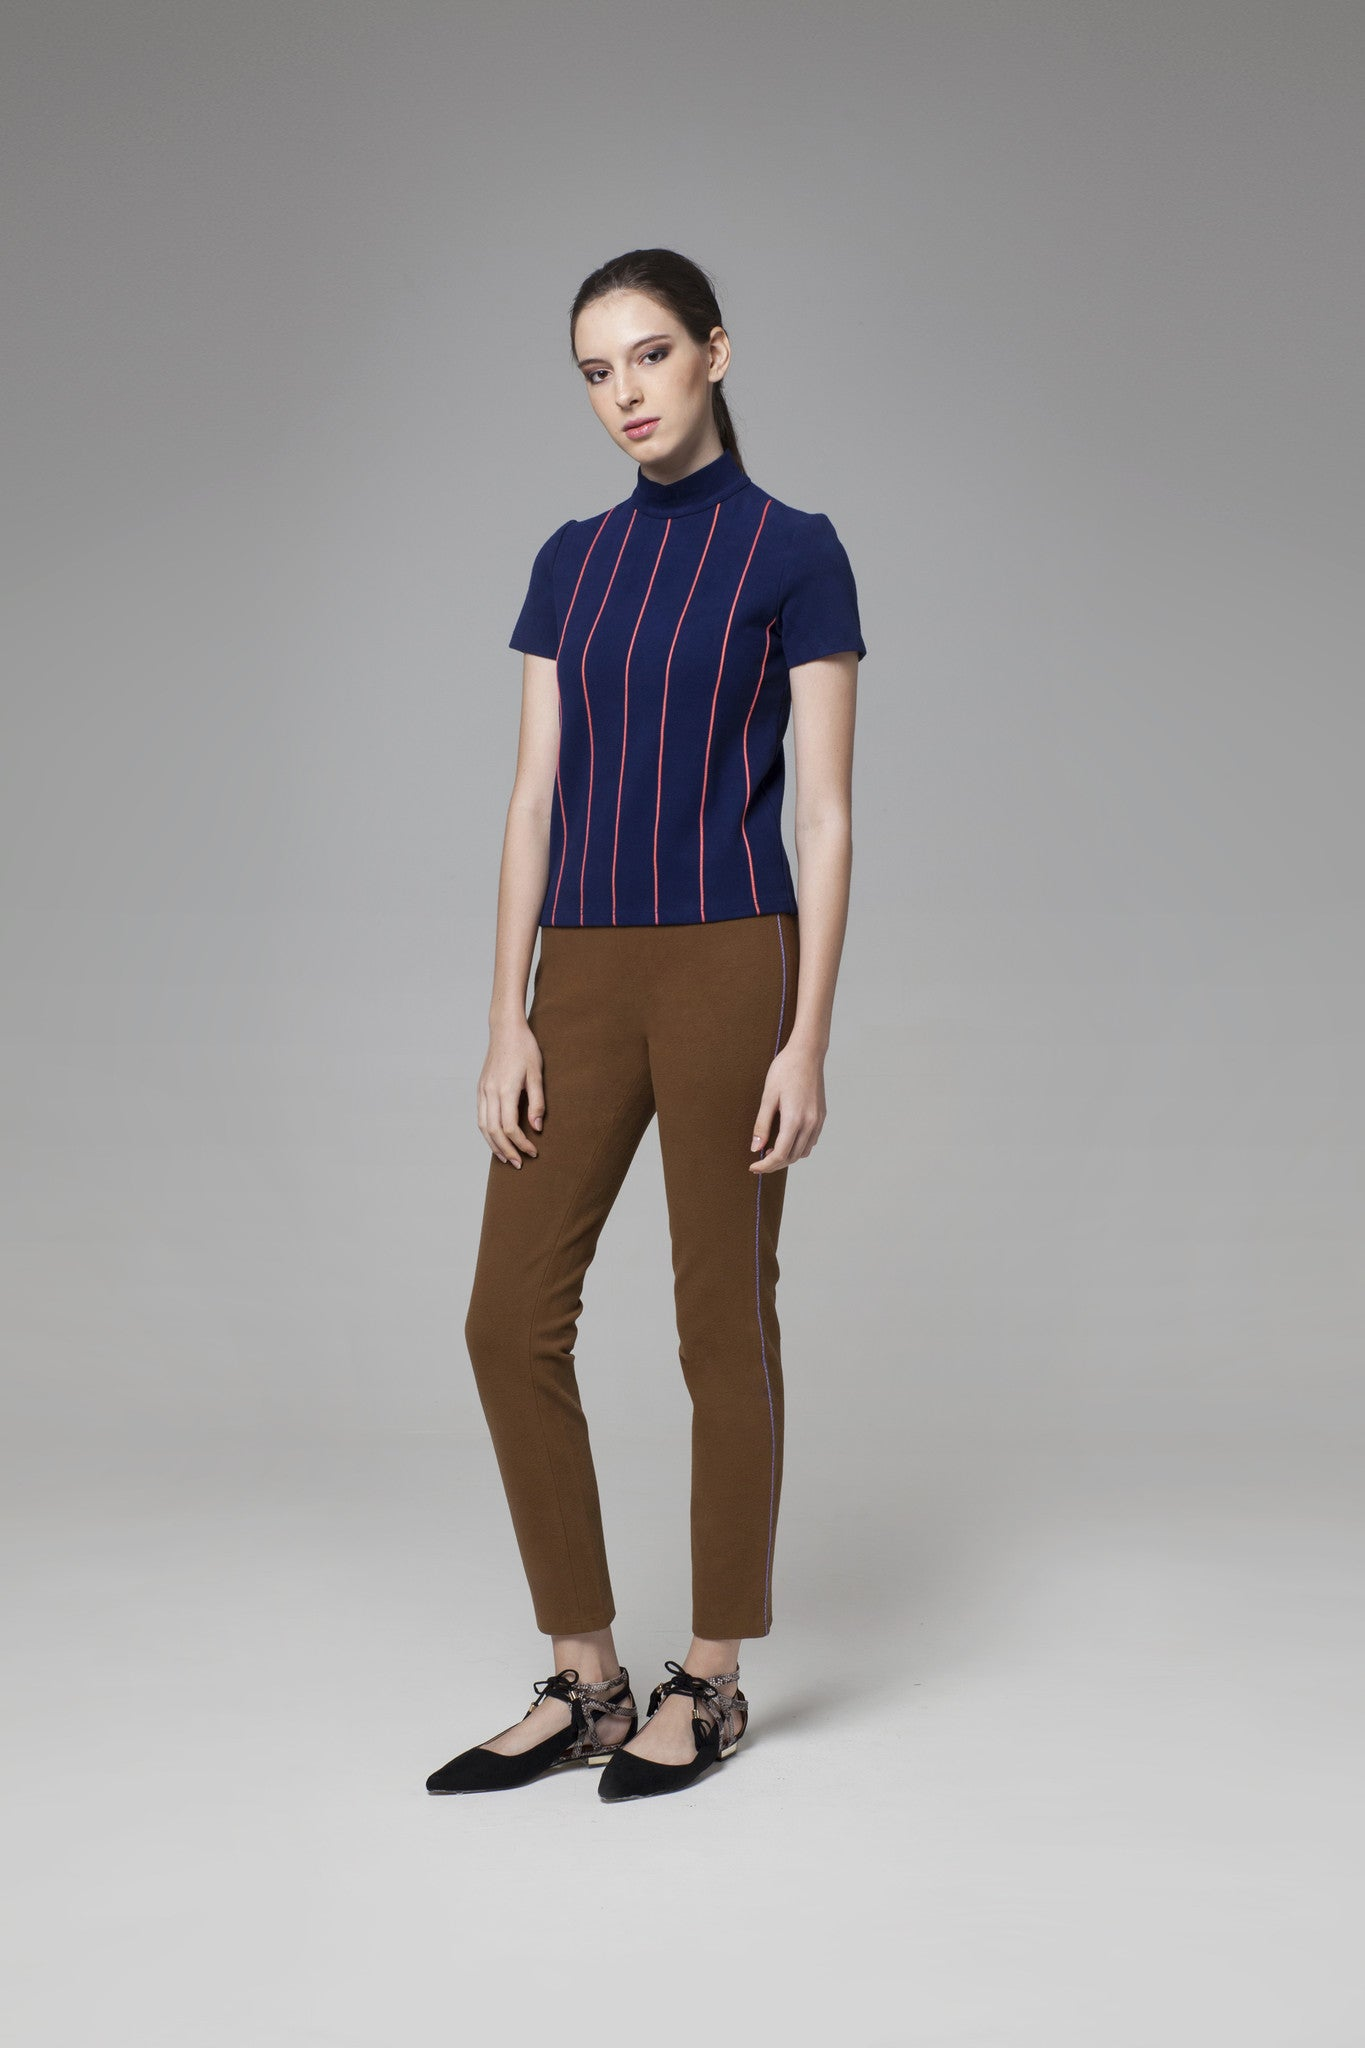 Navy Stripes Top - GlanceZ   - 1